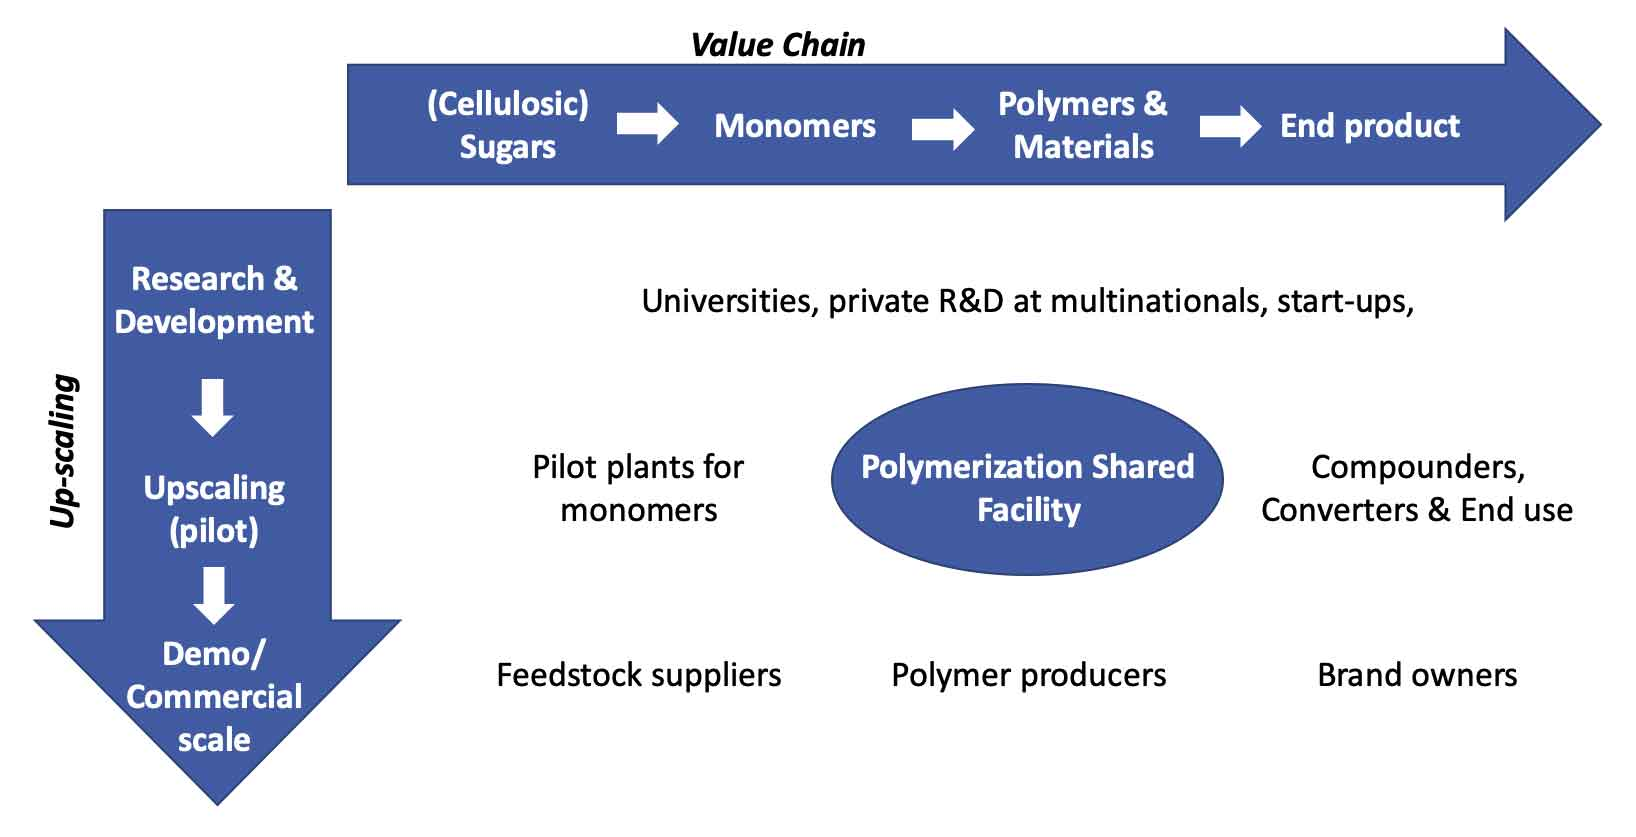 Diagram Polymerization Shared Facility